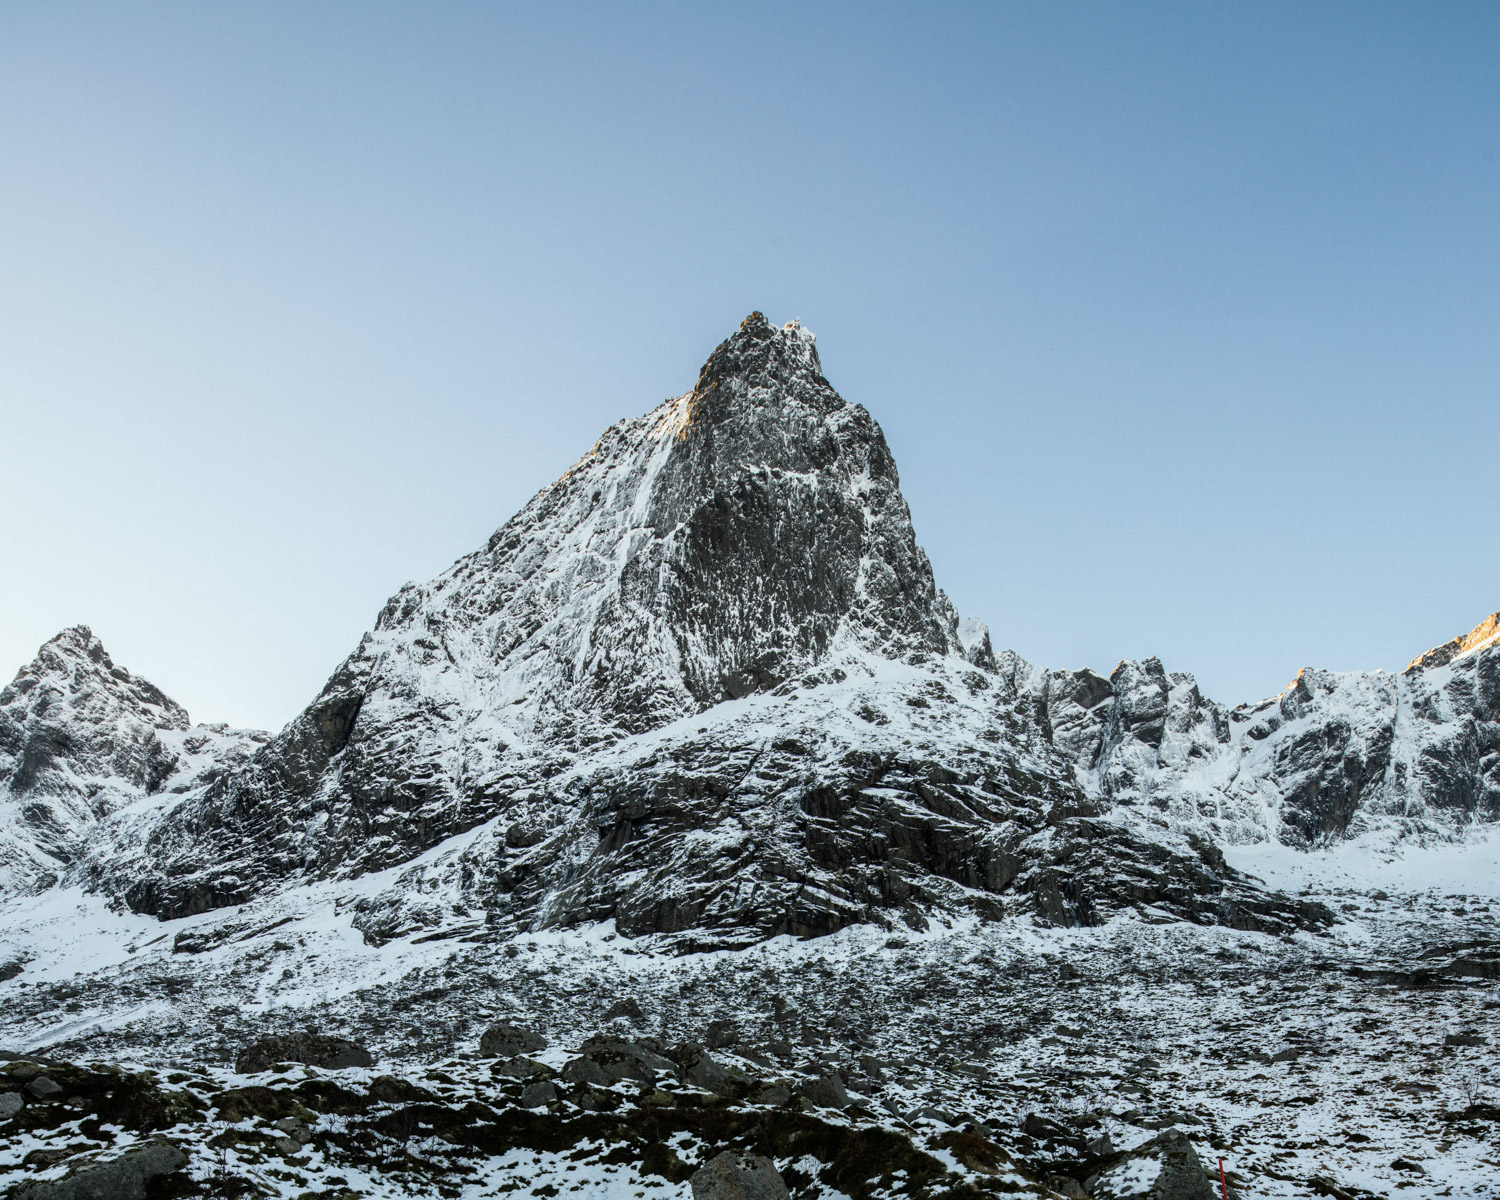 On the many peaks forming the incredible landscape of the Lofoten island